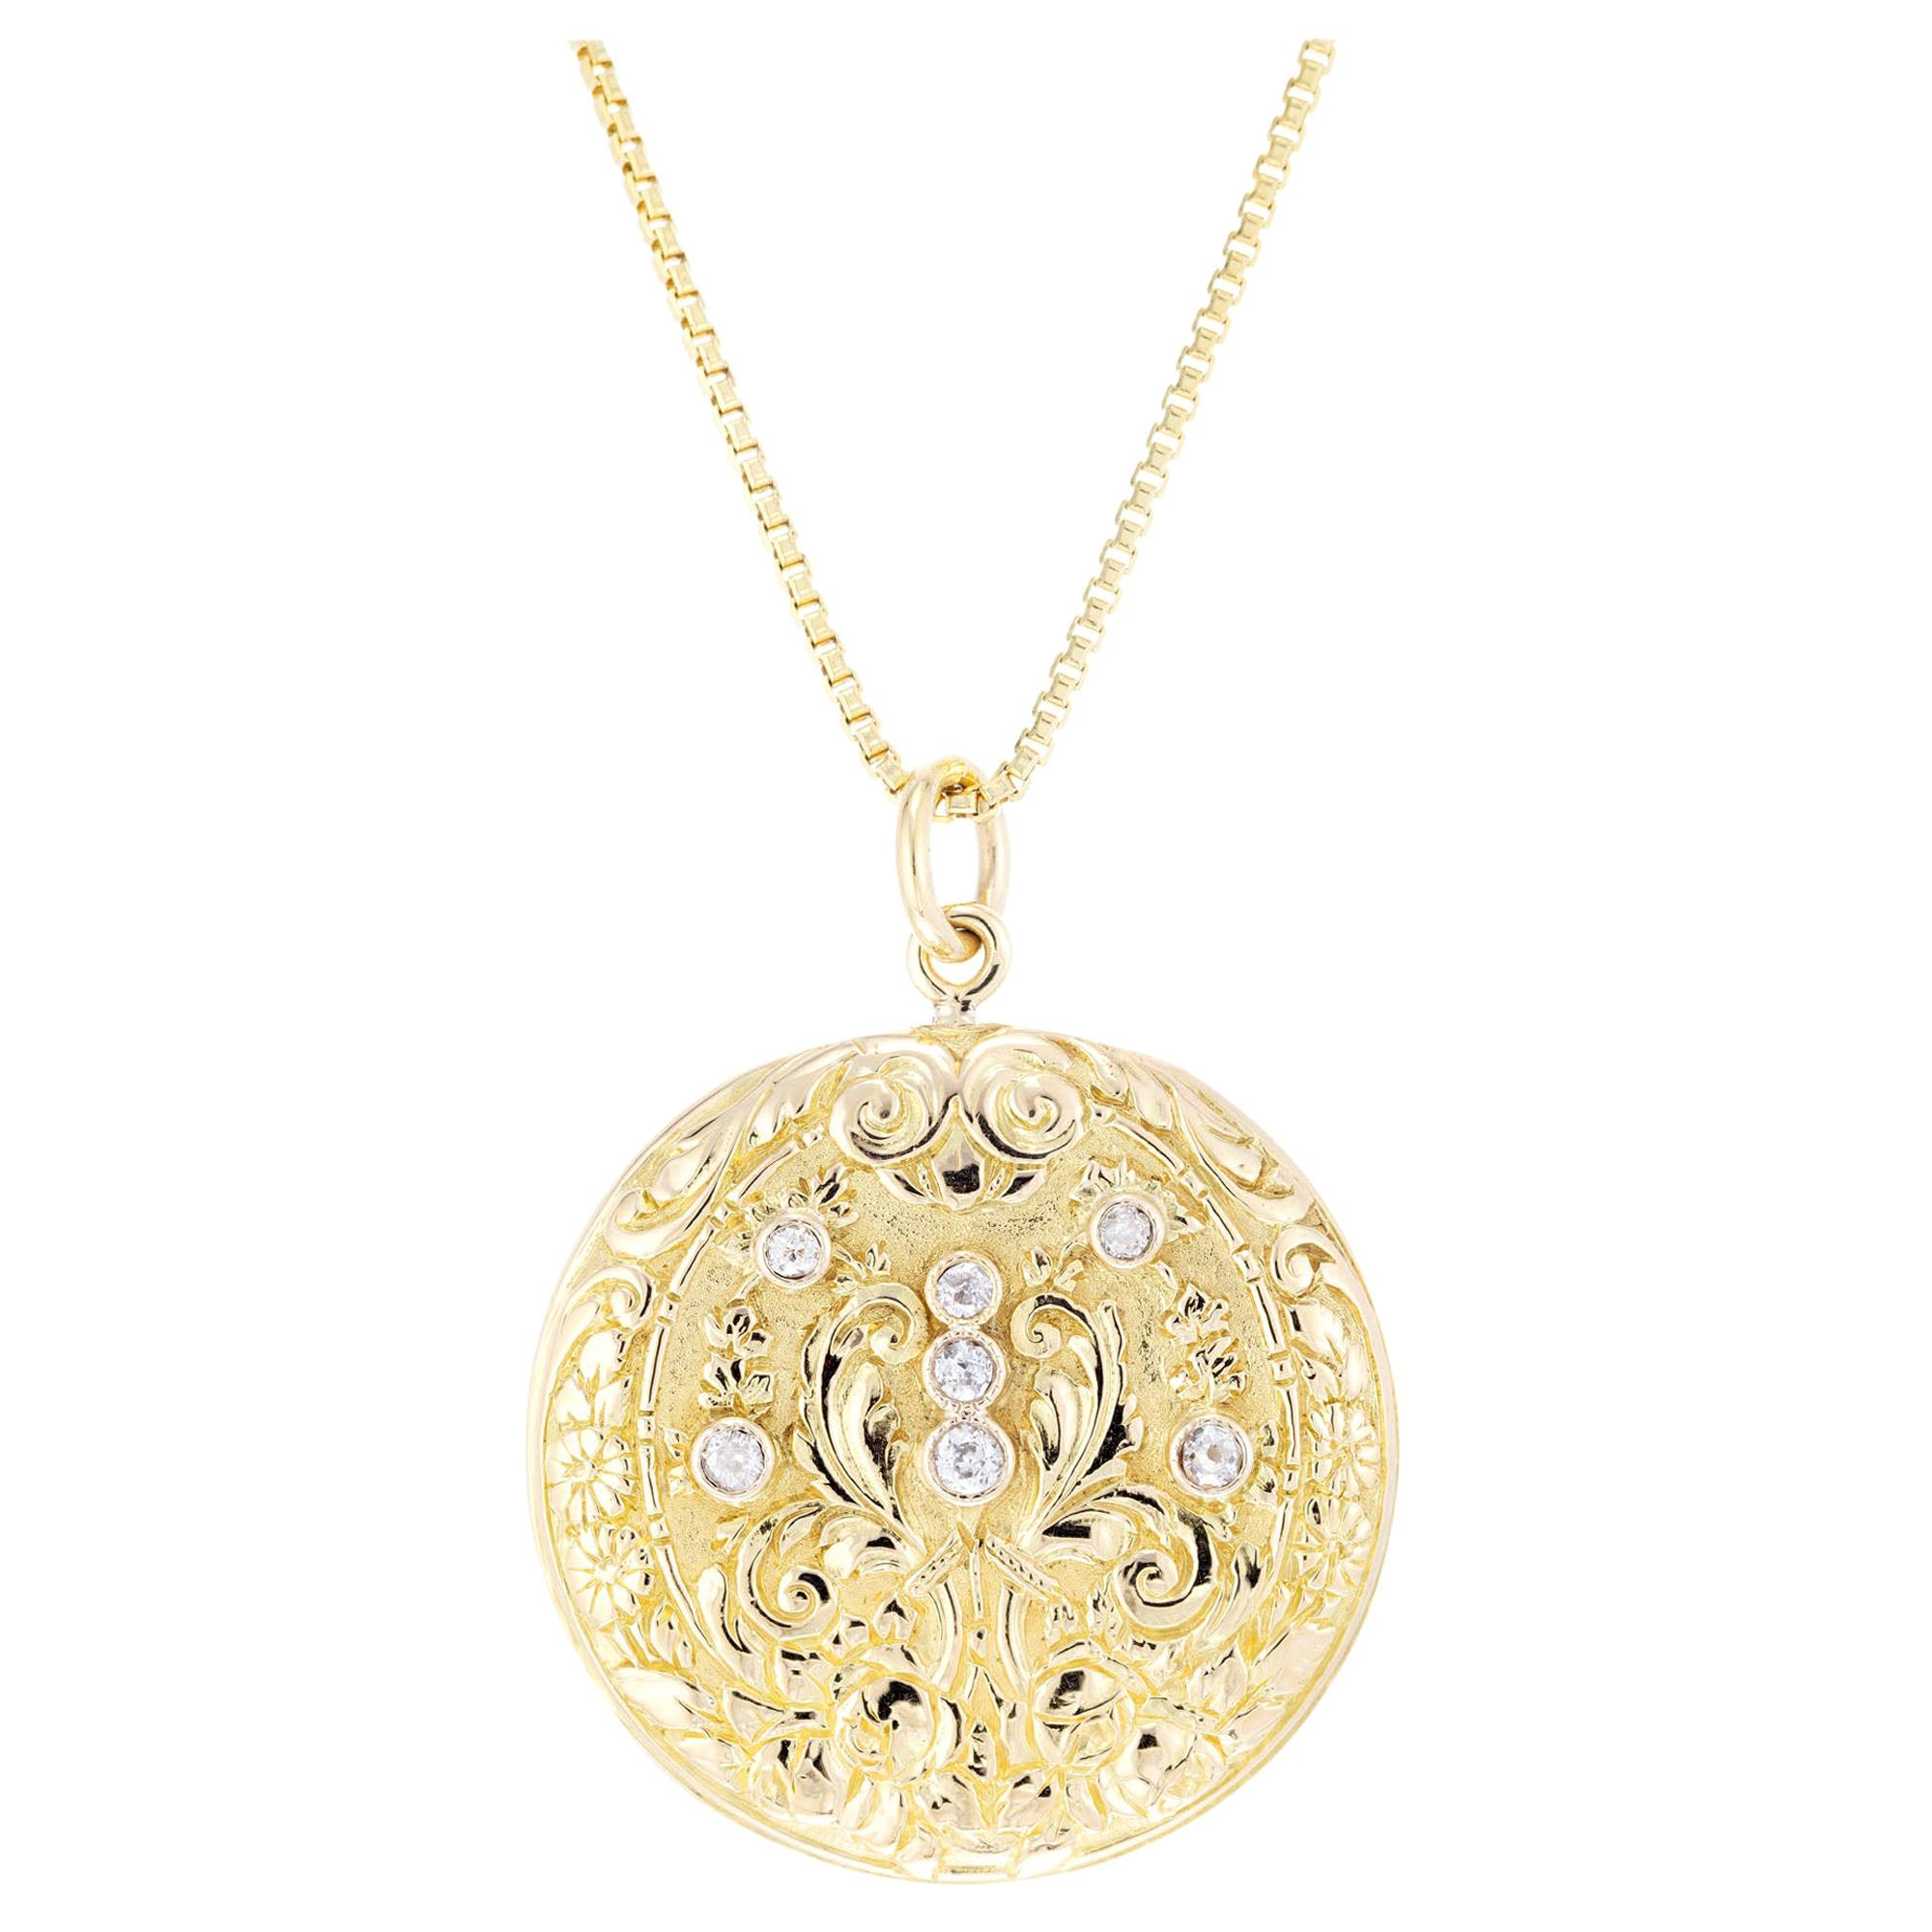 .26 Carat Diamond Yellow Gold Pendant Necklace